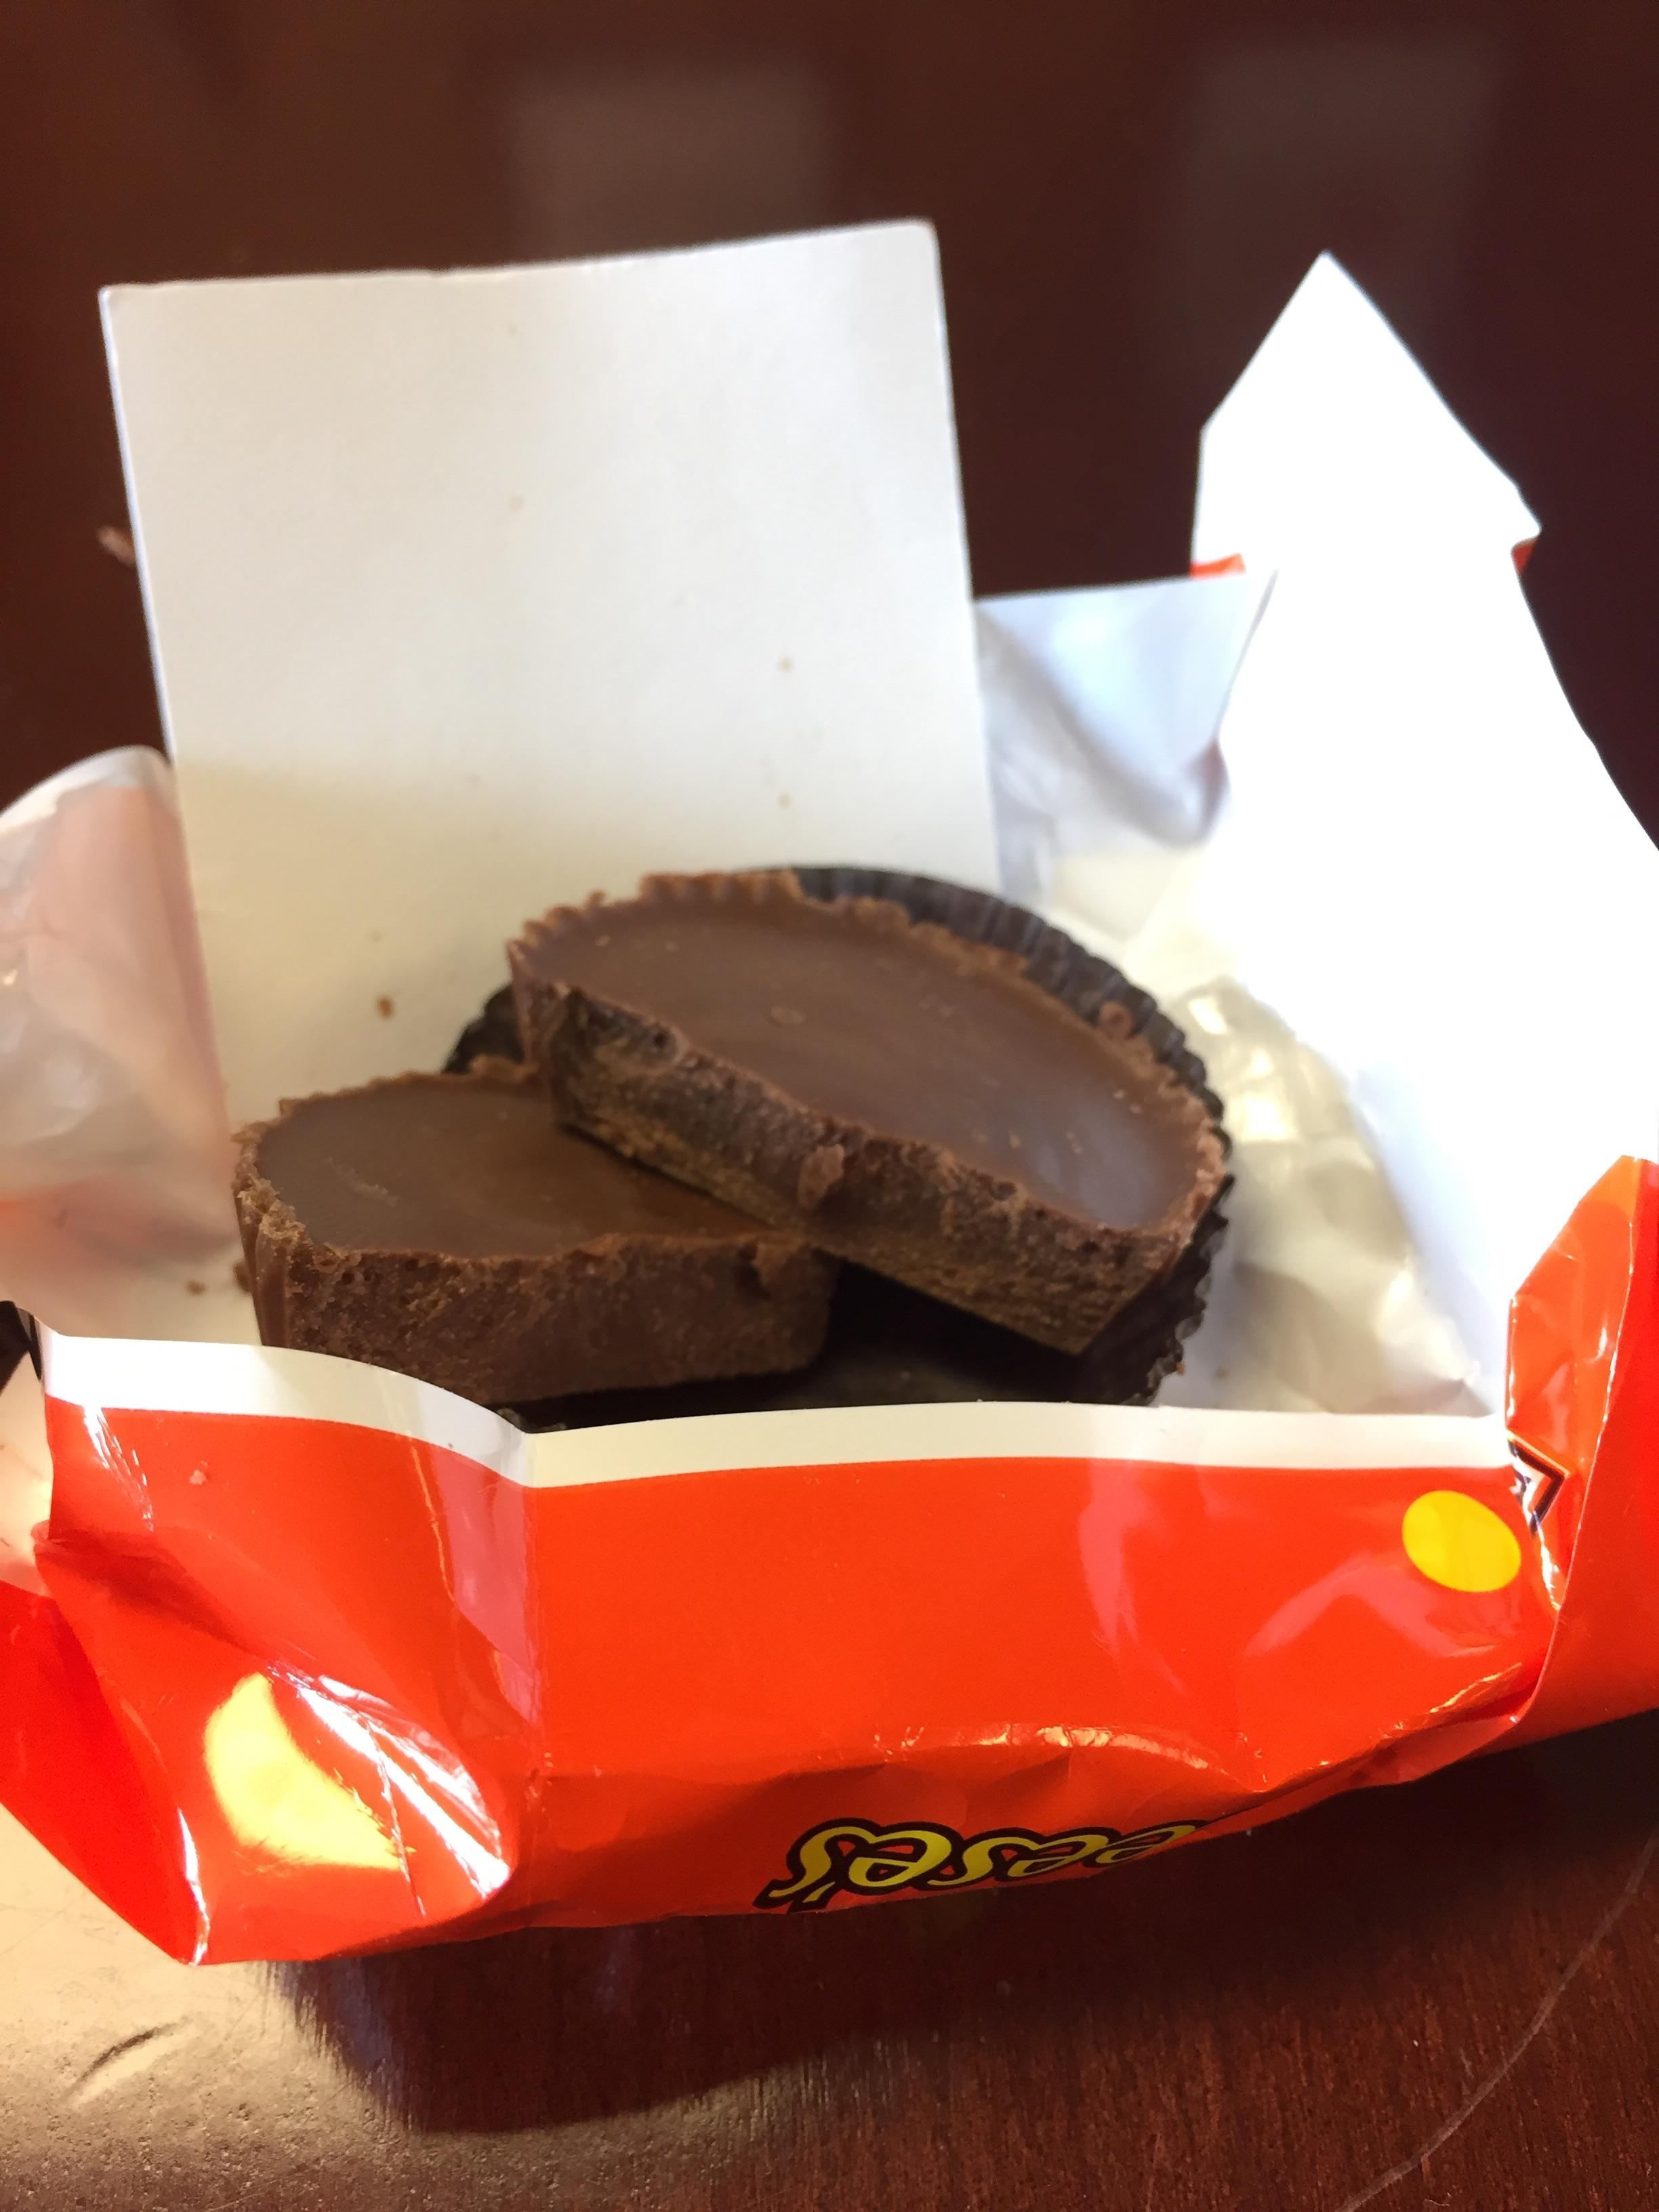 Dog Ate Reese's Peanut Butter Cup : reese's, peanut, butter, Reese's, Peanut, Butter, Mildlyinteresting